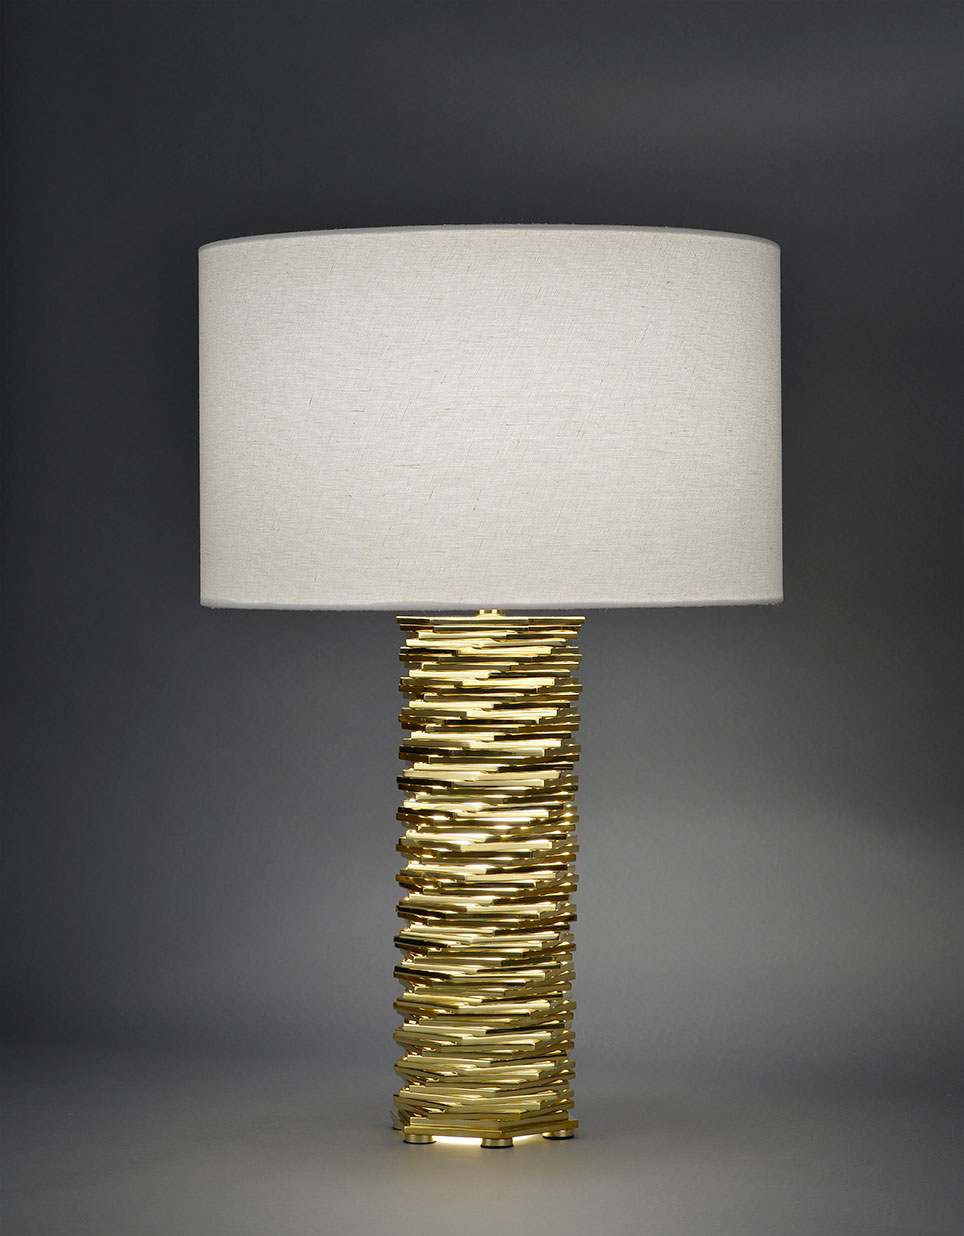 Solas Table Lamp